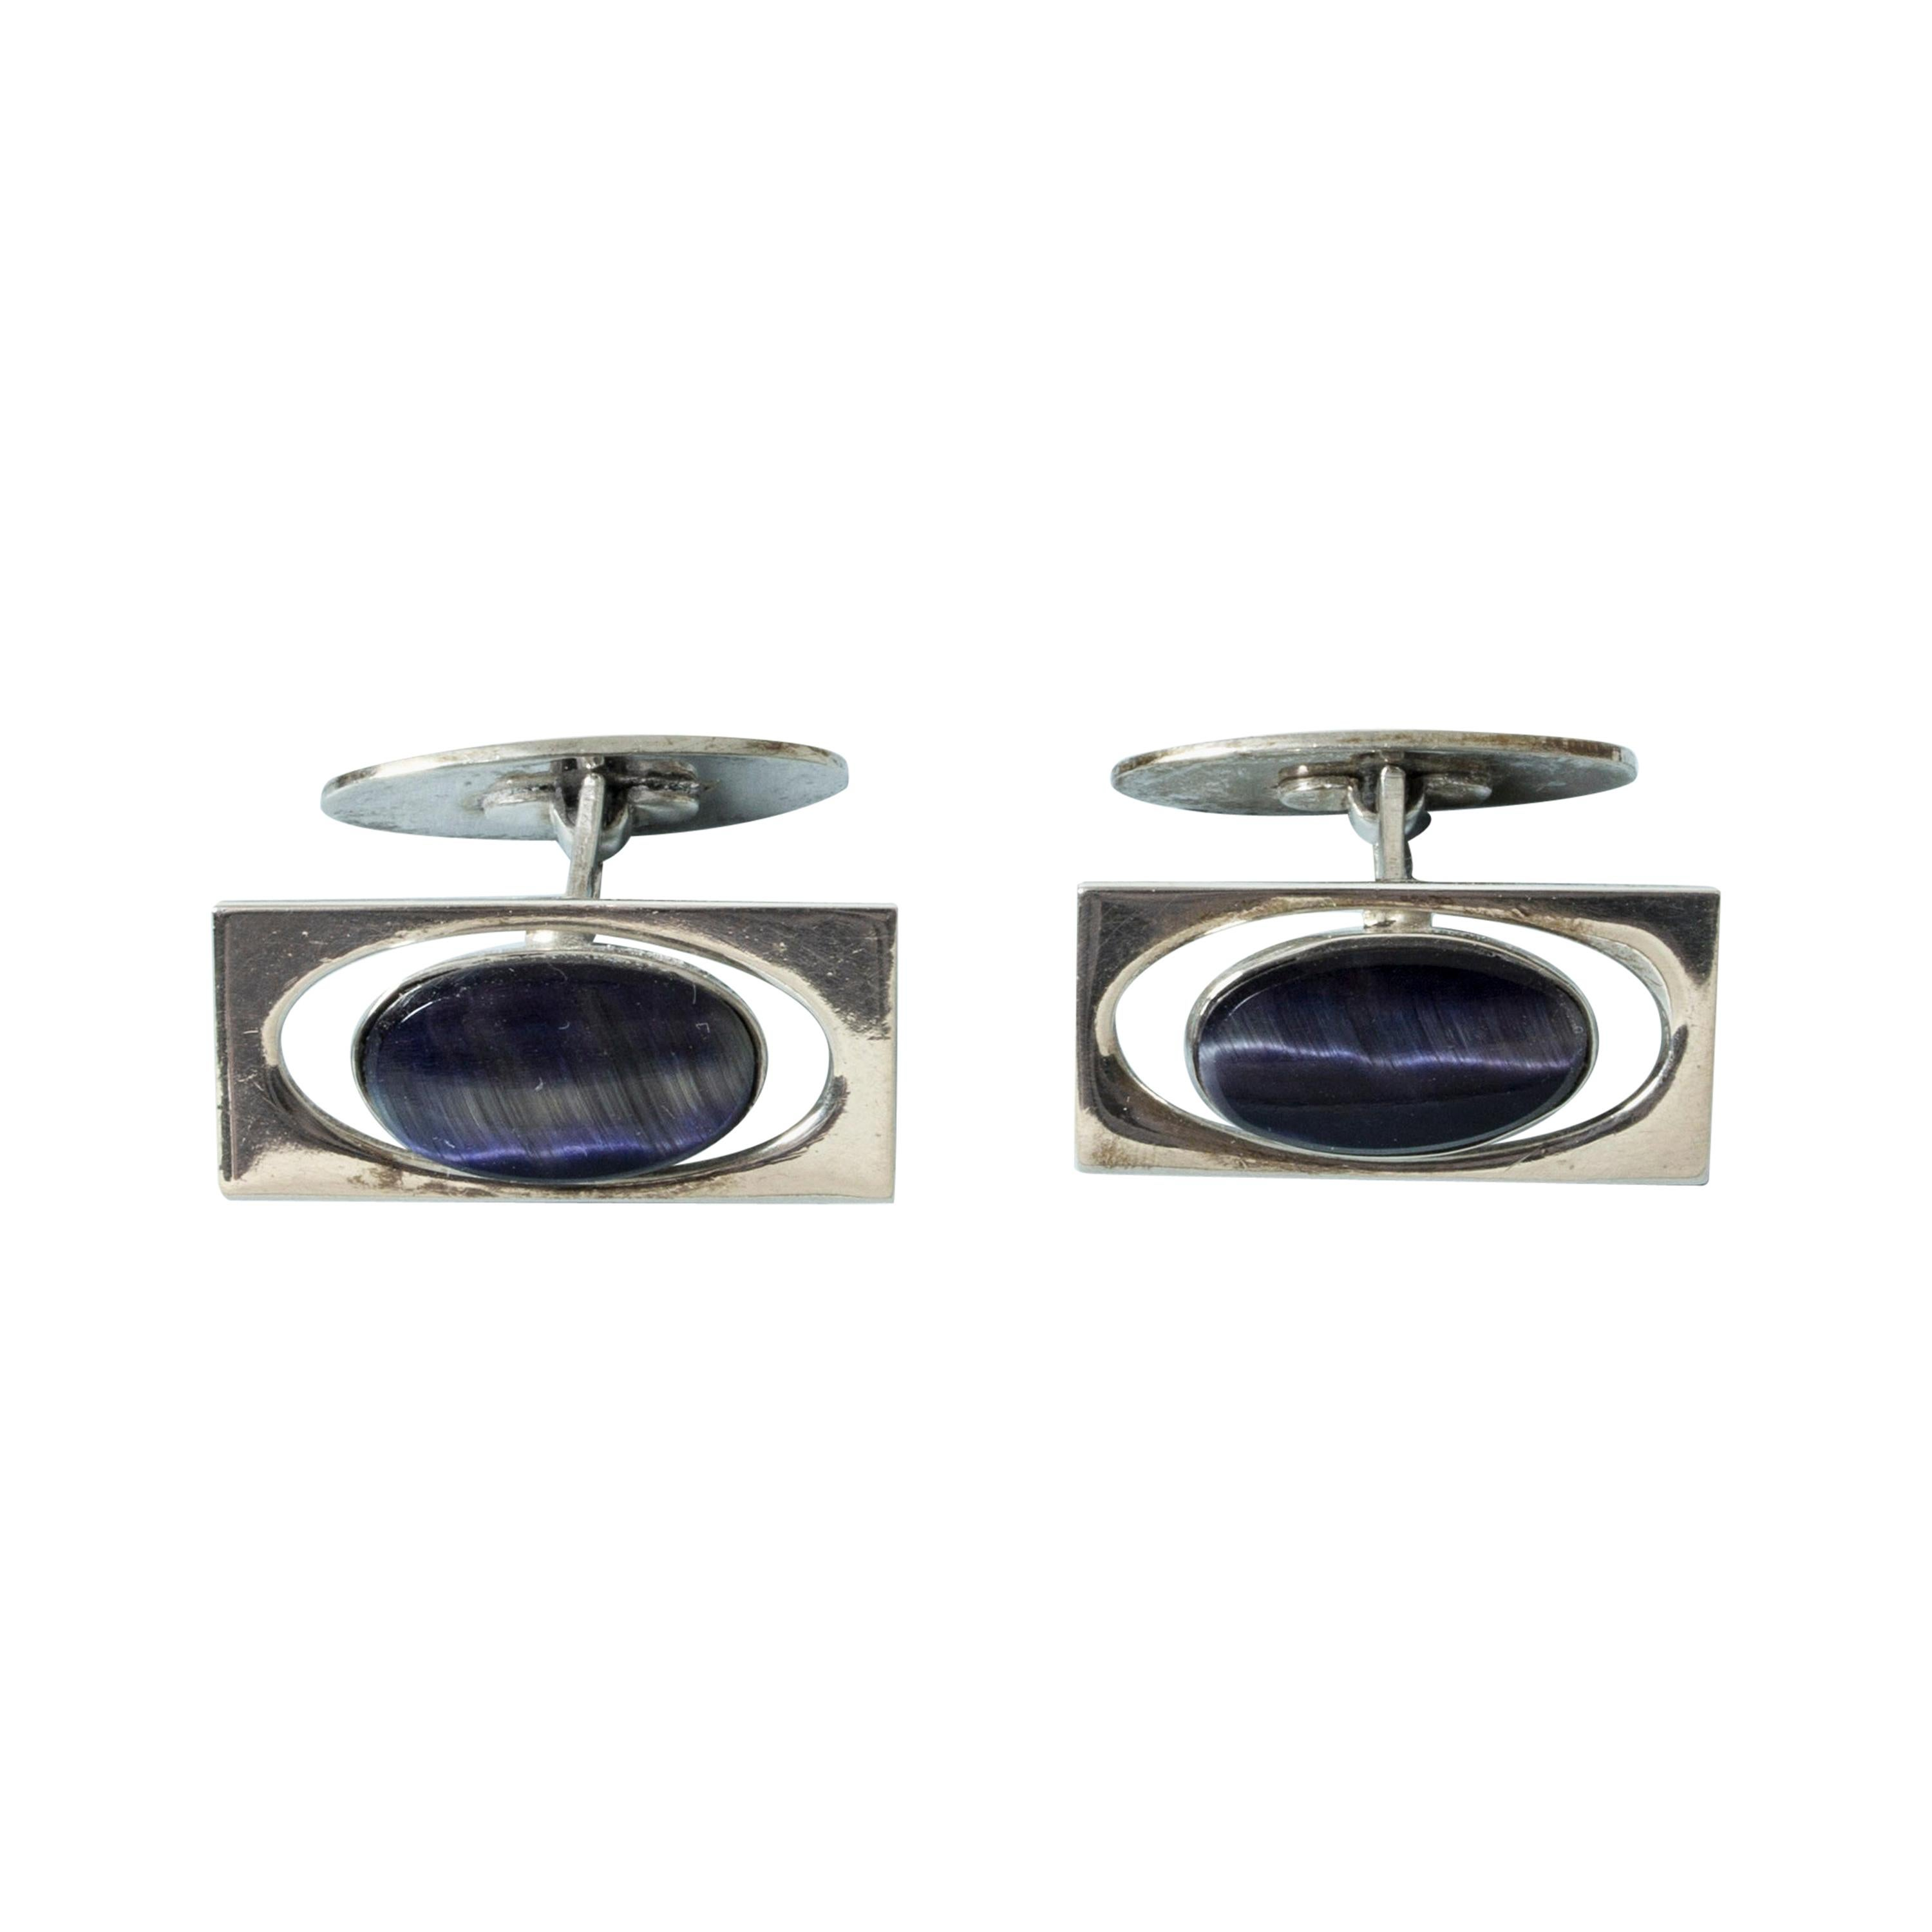 Silver and Purple Stone Modernist Cufflinks from Kaplans, Sweden, 1963